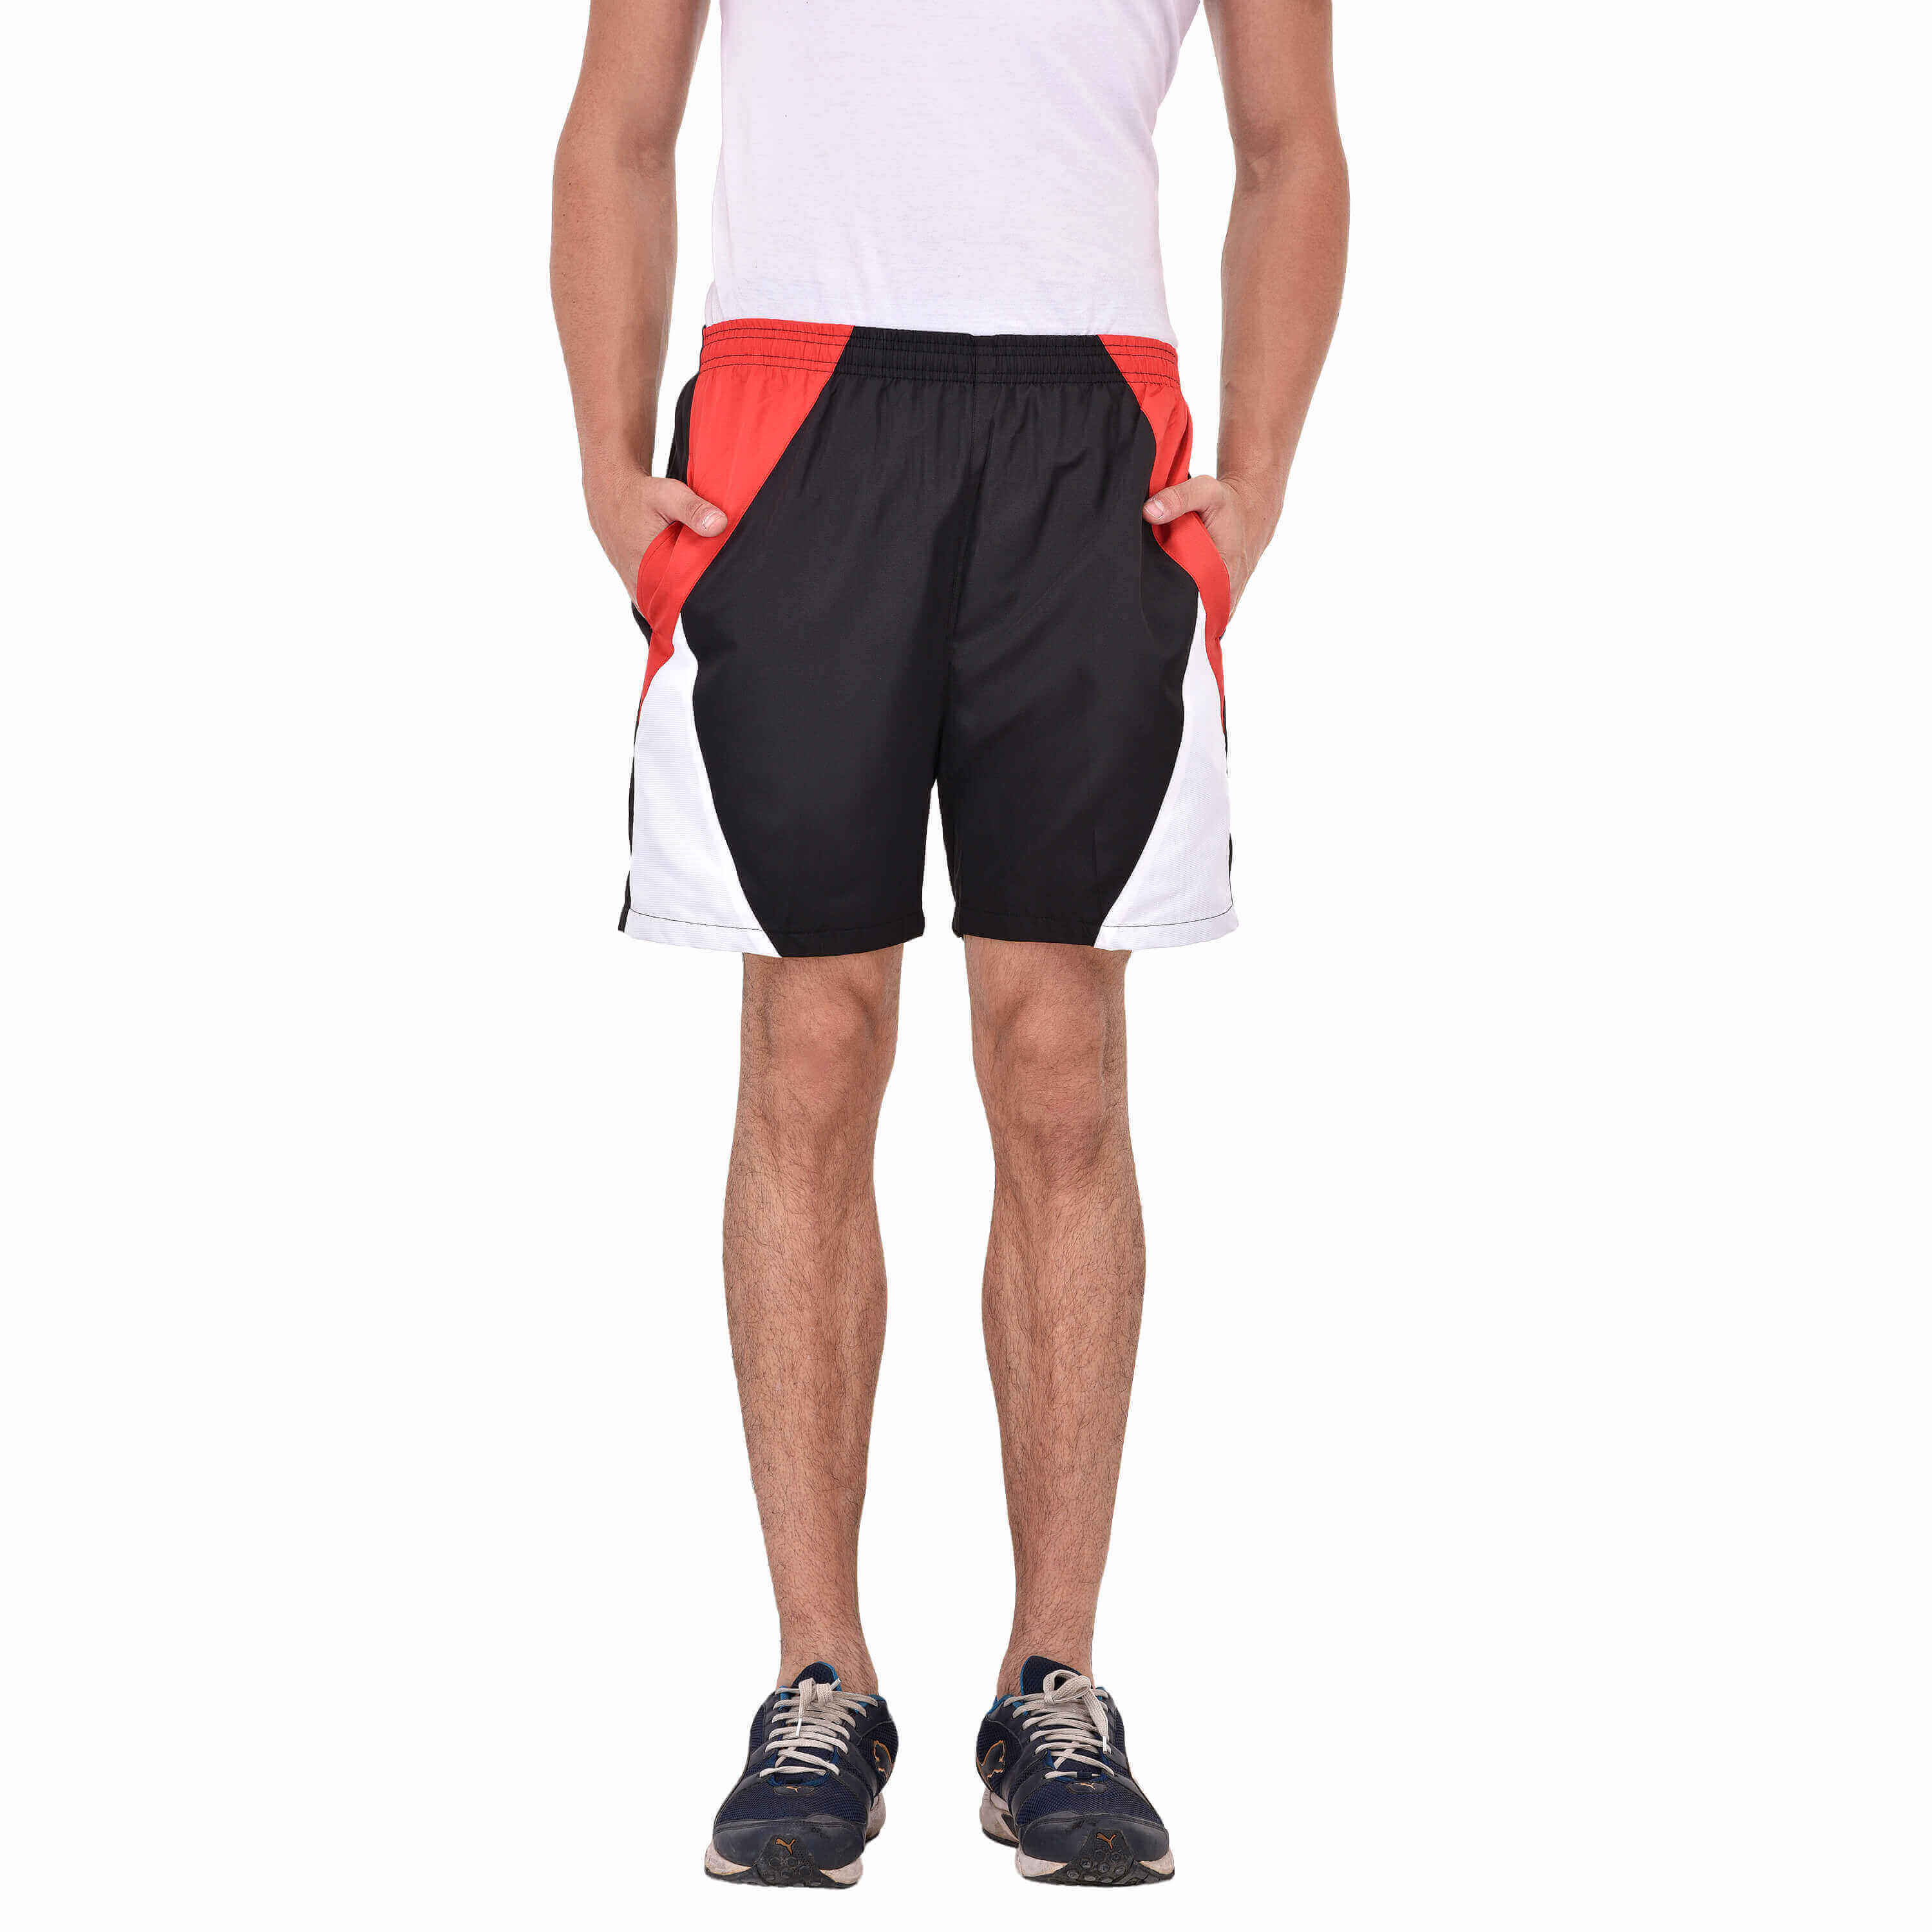 Soccer Shorts Manufacturers in United-states-of-america